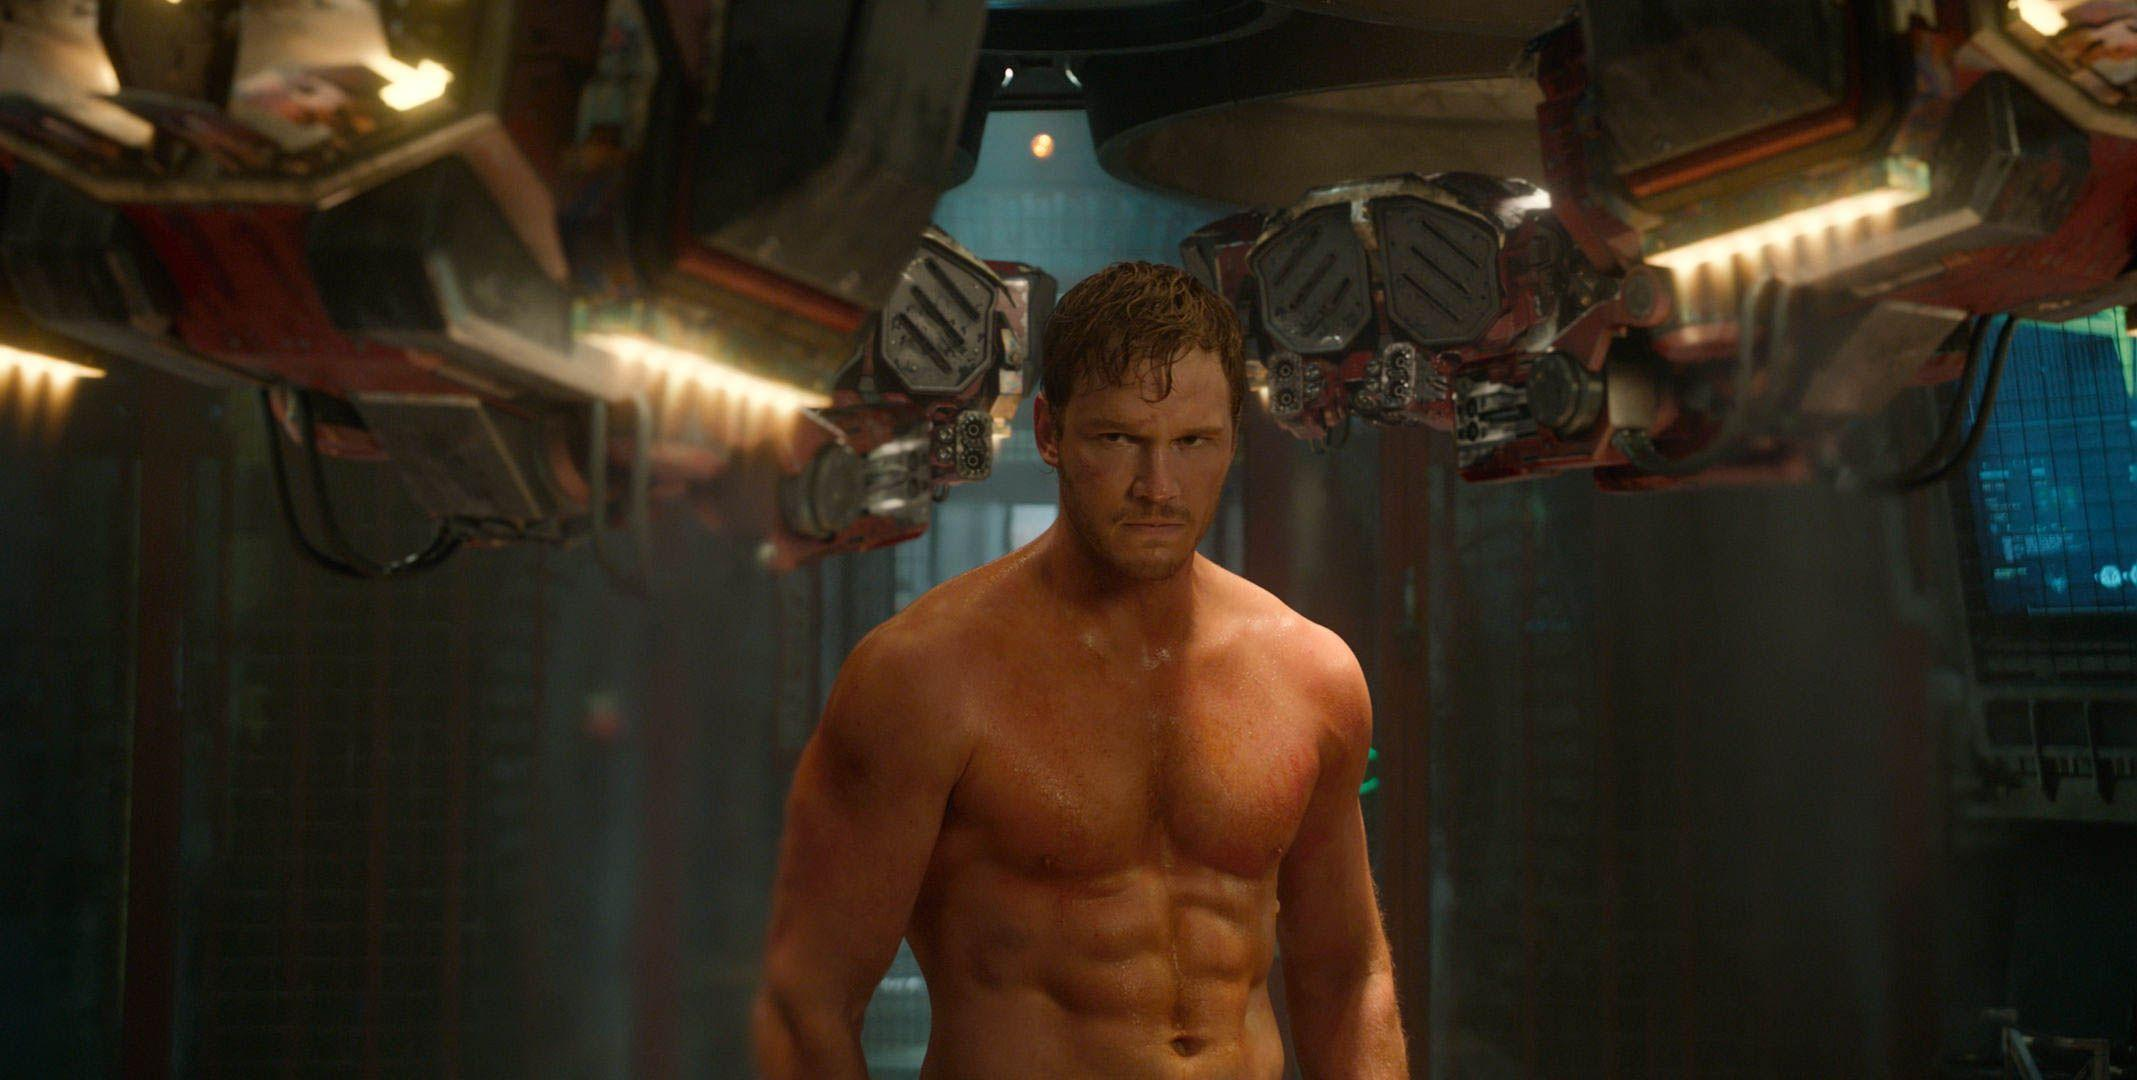 Chris Pratt Amazing Wallpapers HD Backgrounds - All HD Wallpapers